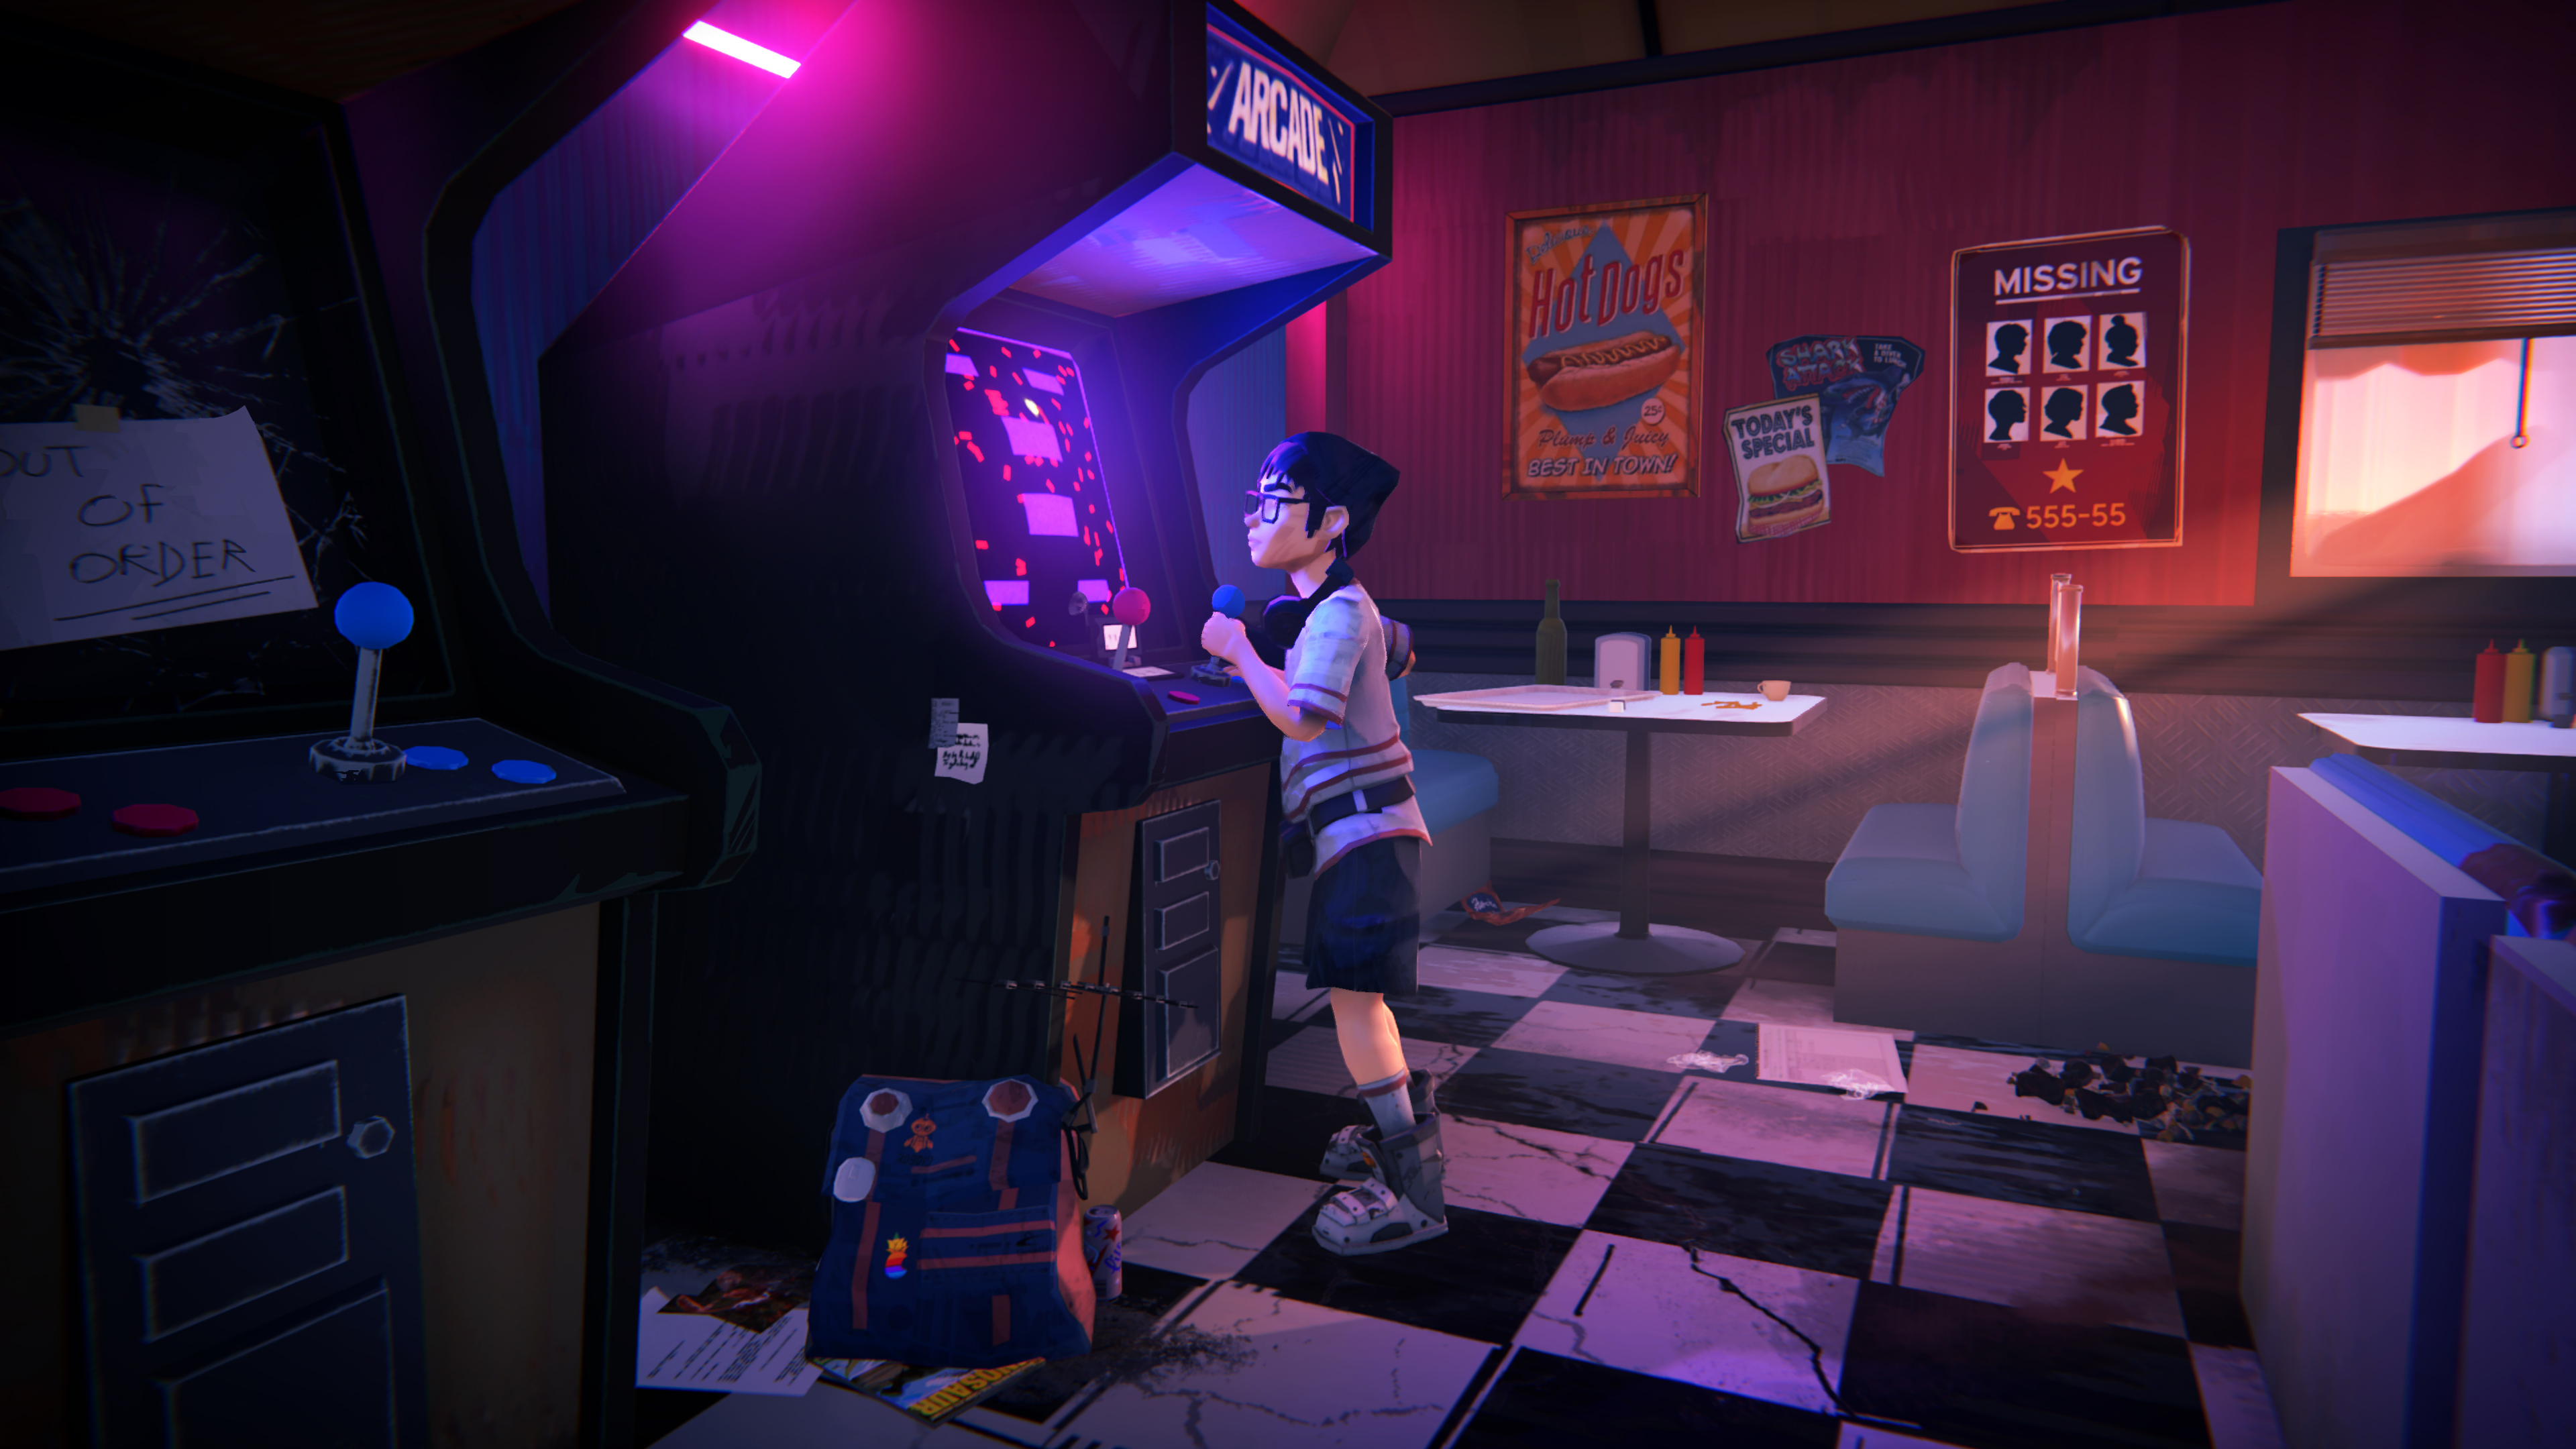 A young boy plays an arcade game in a dimly lit diner.